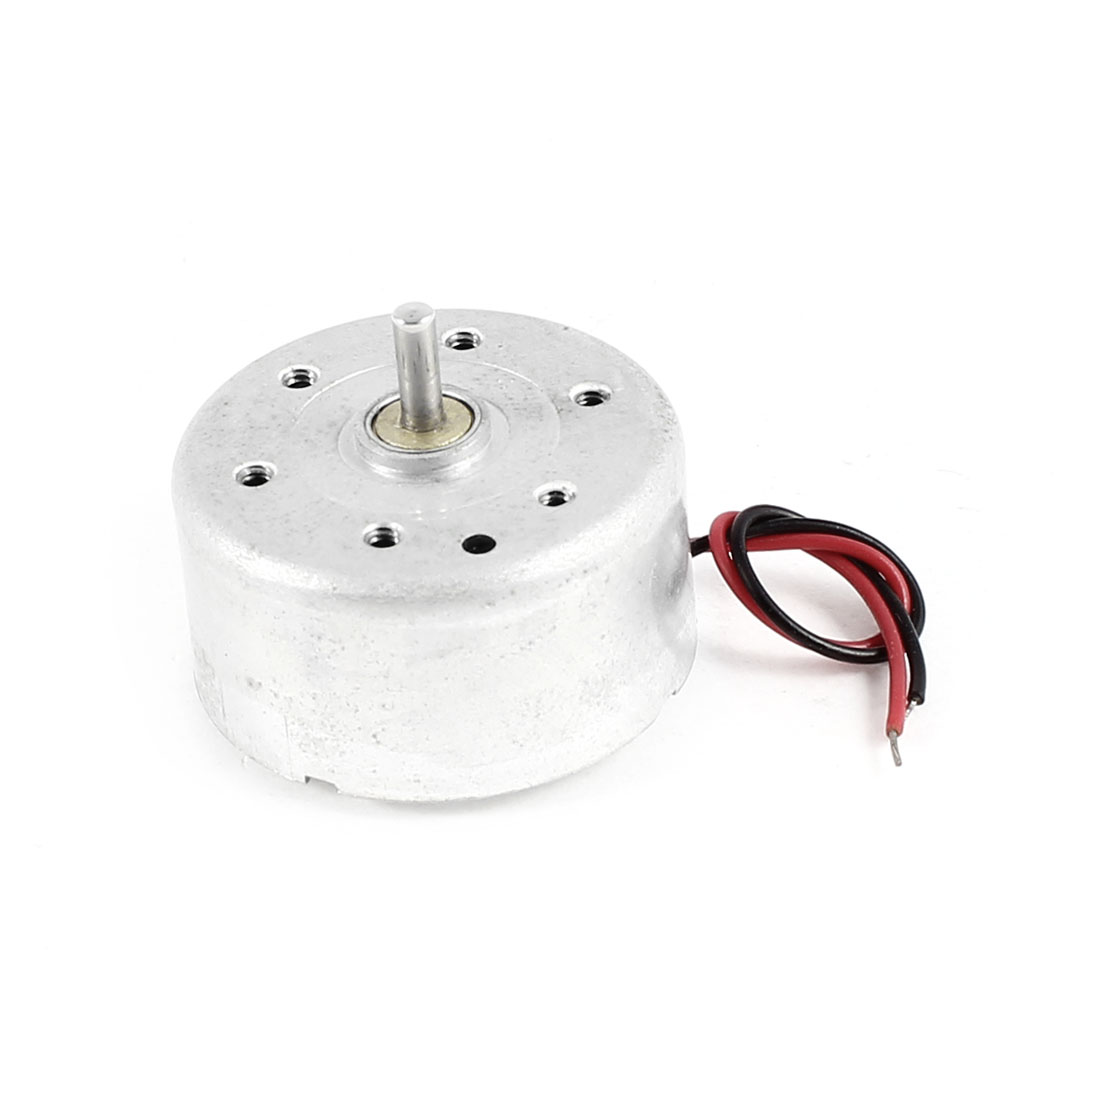 DC 1.5-3V 4500RPM 2-Wires Electric Mini Motor 12x25mm for CD DVD Player